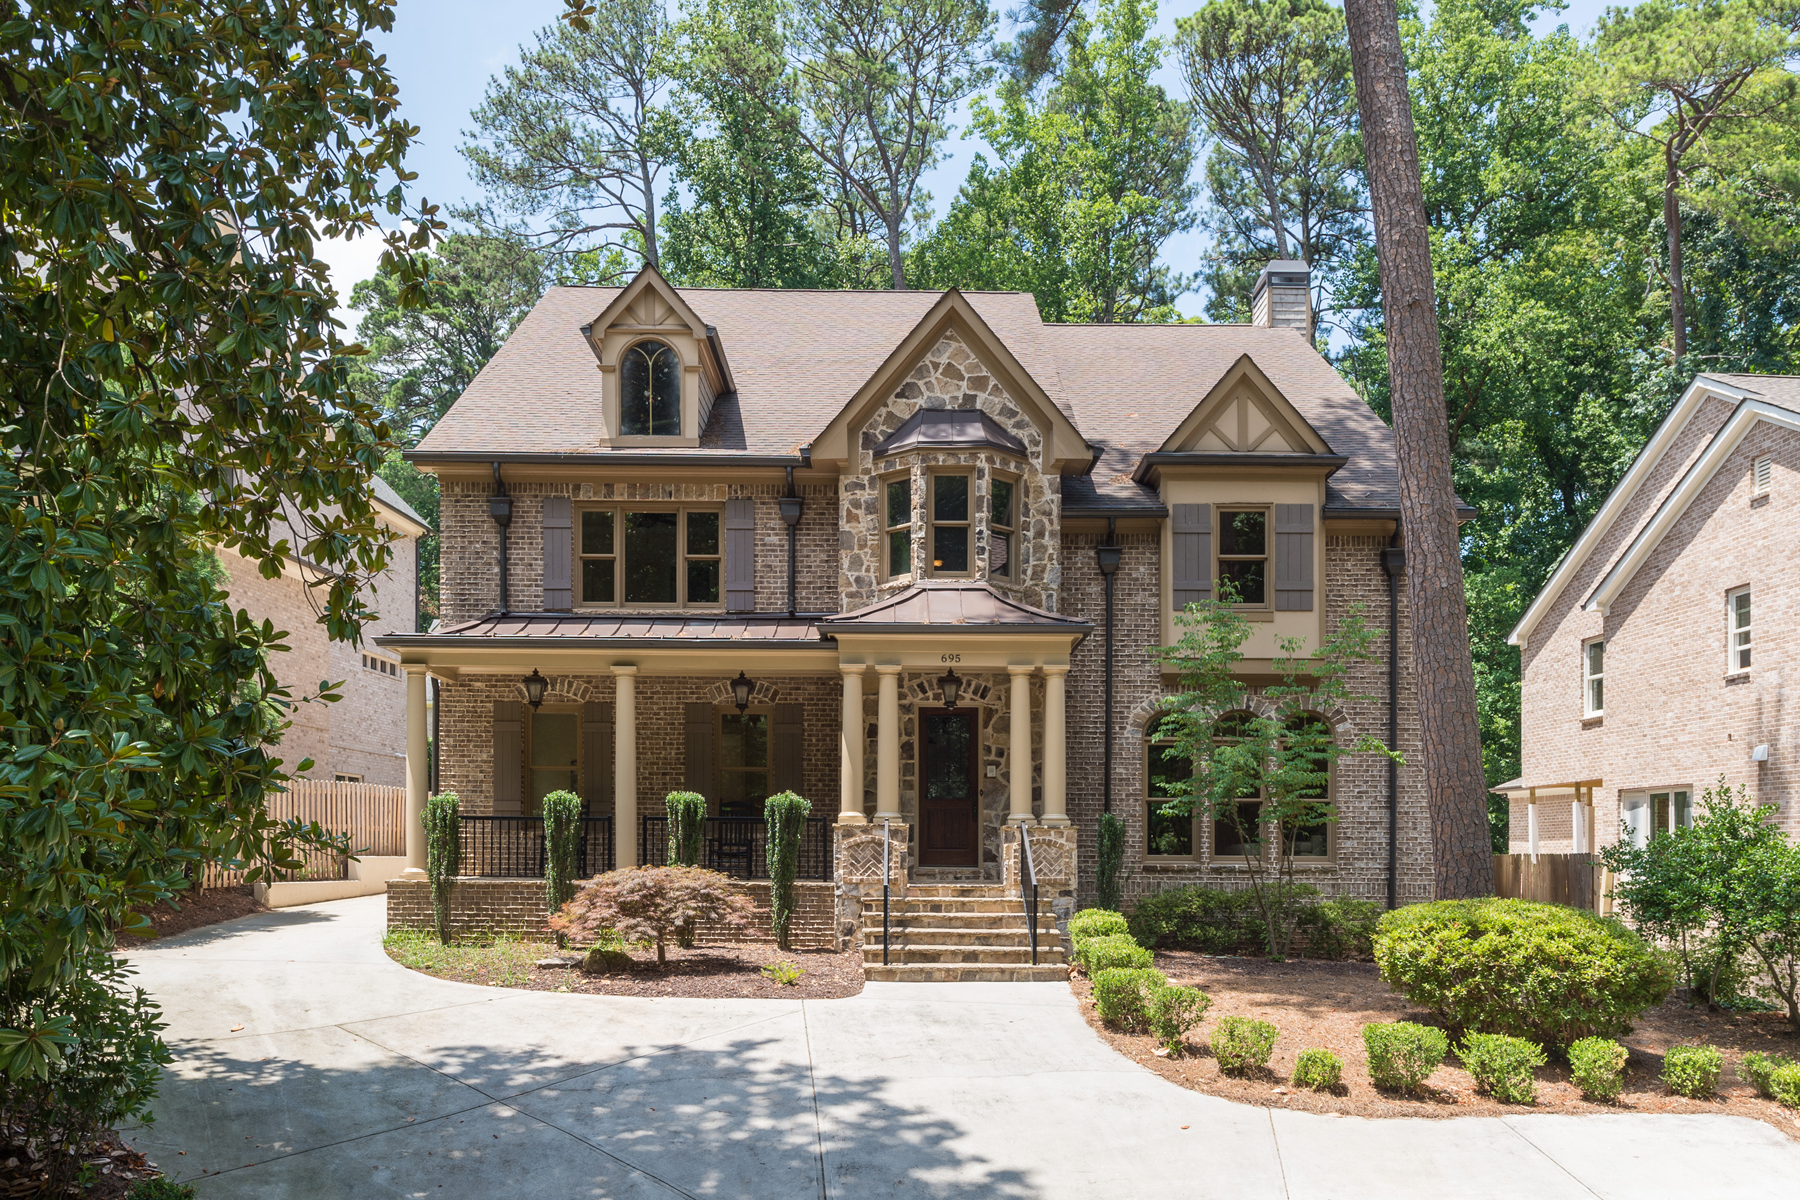 Single Family Home for Sale at Grand BuckheadSpringlake Custom Home 695 Norfleet Road NW Springlake, Atlanta, Georgia, 30305 United States